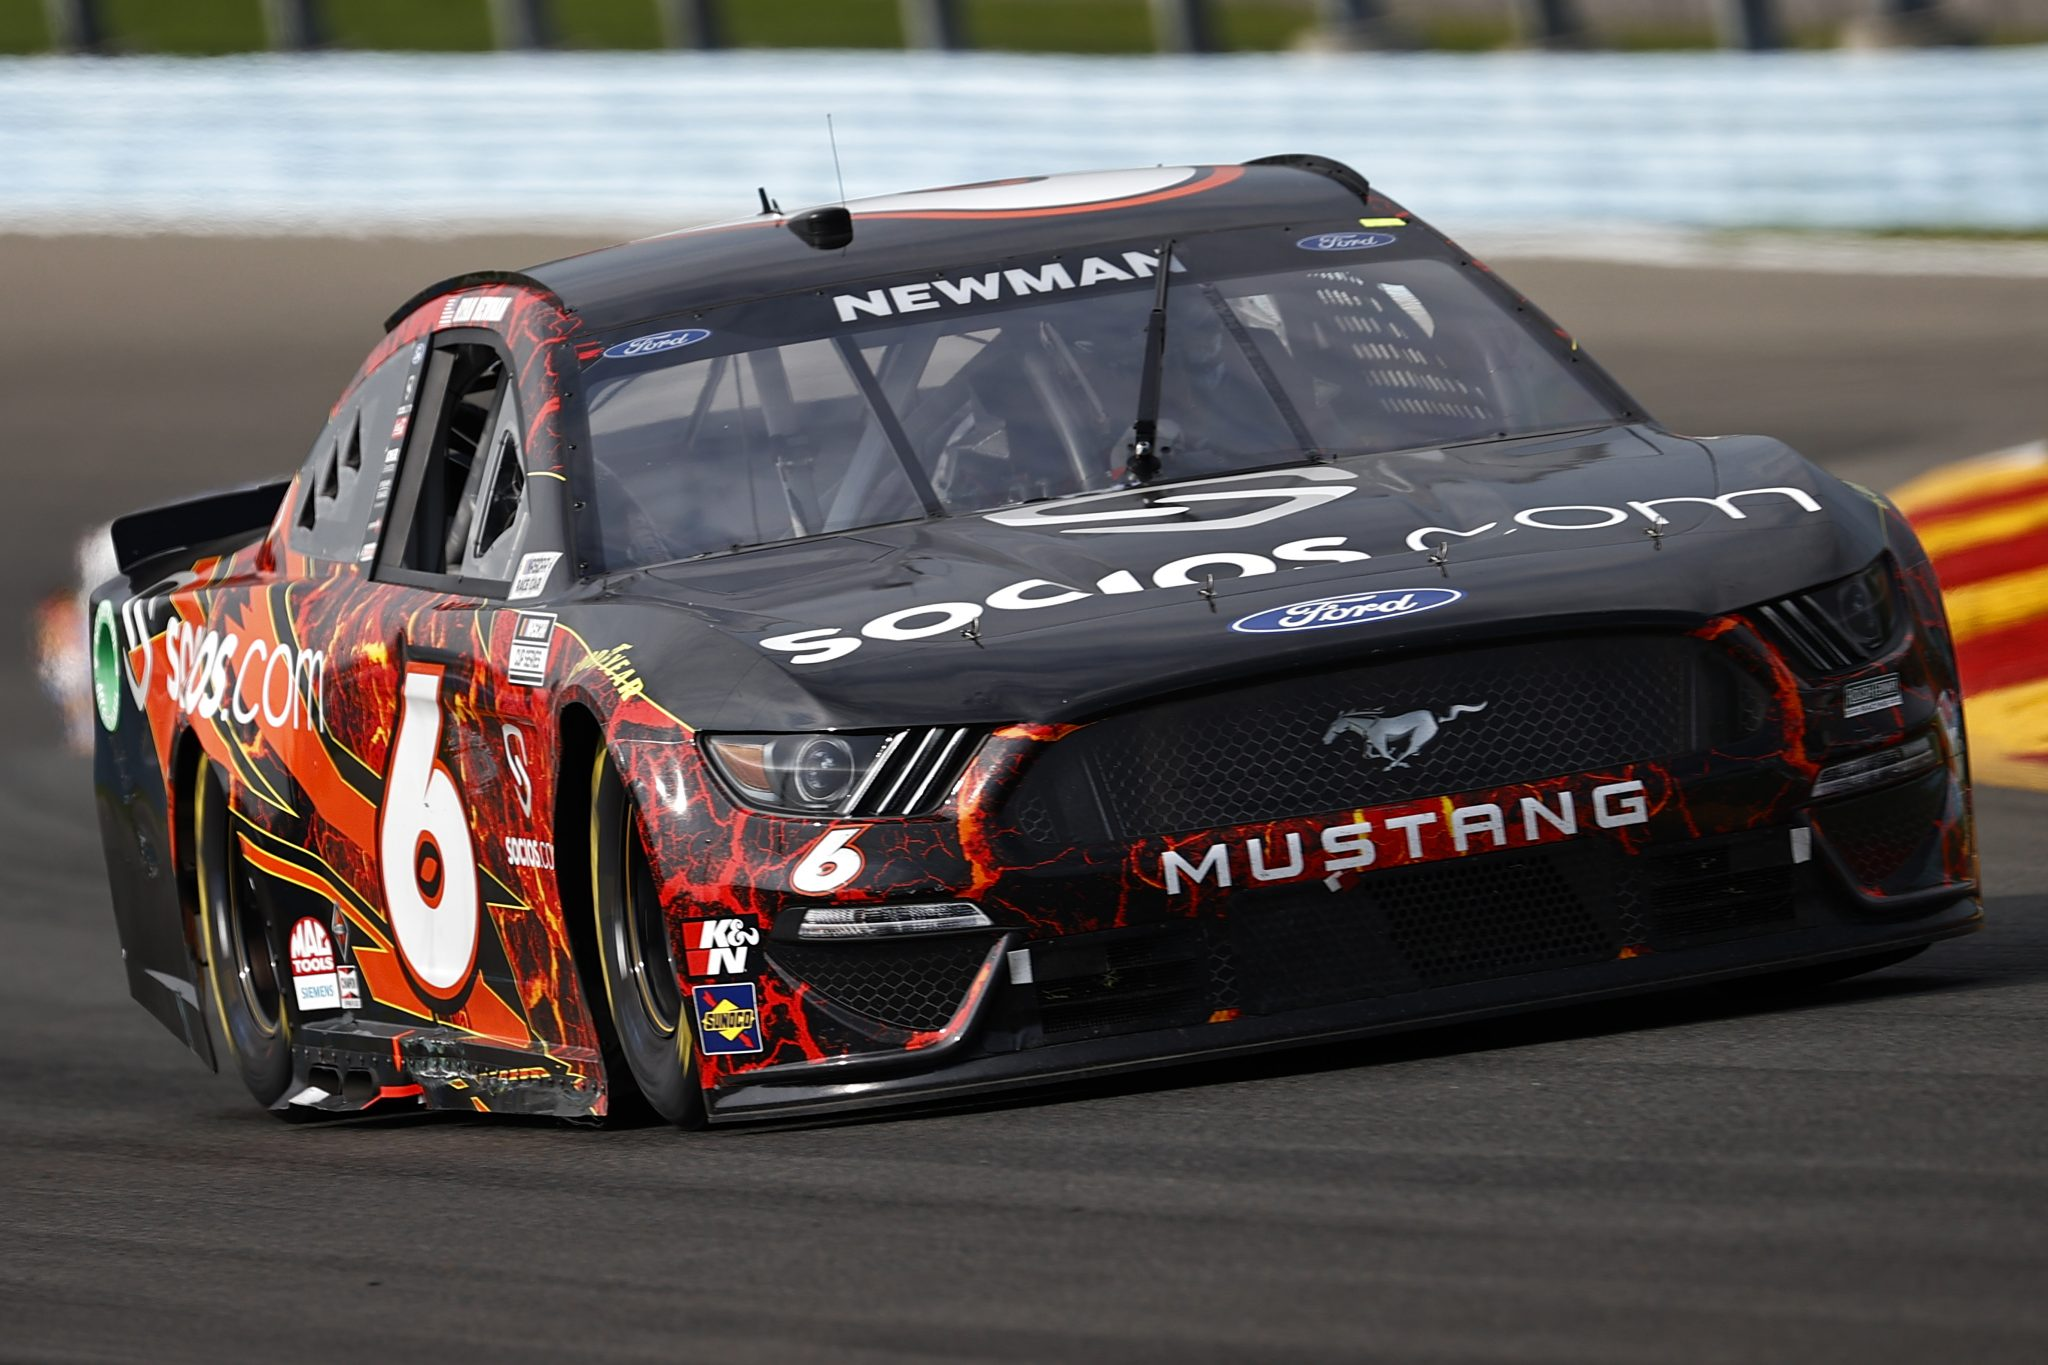 WATKINS GLEN, NEW YORK - AUGUST 08: Ryan Newman, driver of the #6 Ford, drives during the NASCAR Cup Series Go Bowling at The Glen at Watkins Glen International on August 08, 2021 in Watkins Glen, New York. (Photo by Jared C. Tilton/Getty Images) | Getty Images